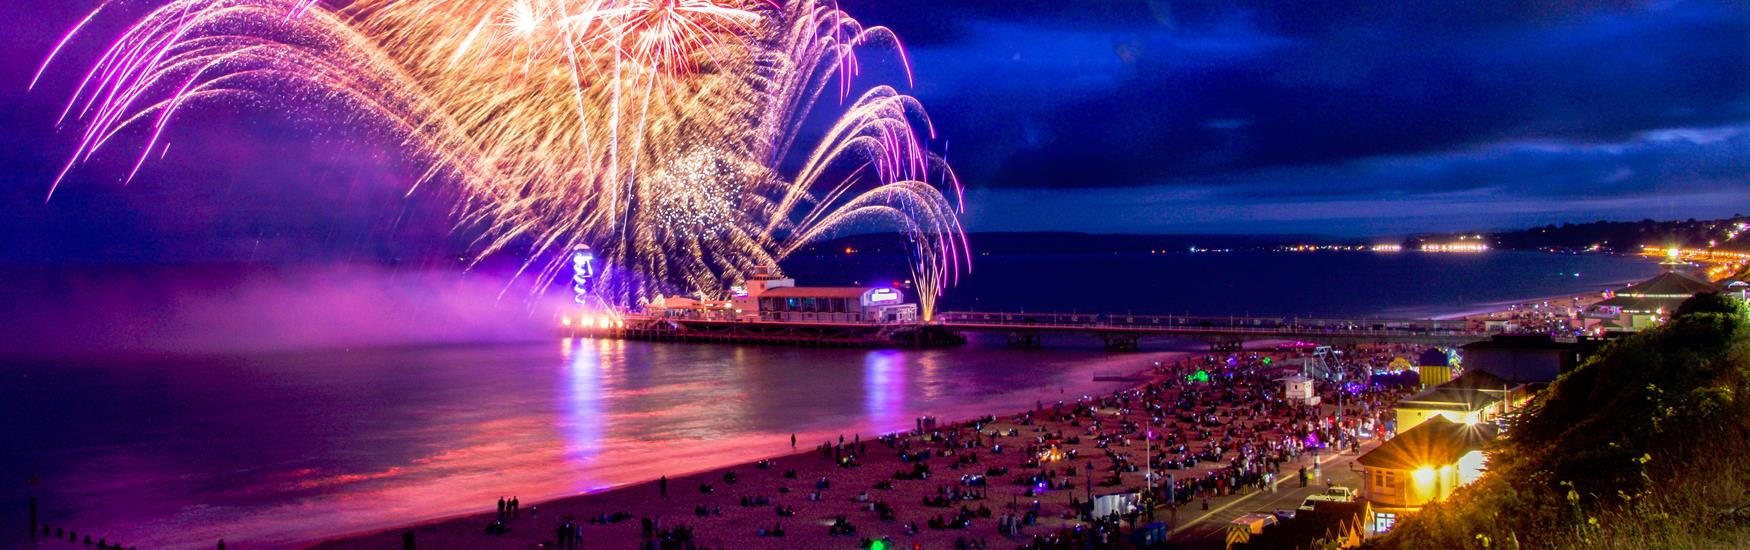 Bournemouth Friday Fireworks: 4, 11, 18 & 25 August